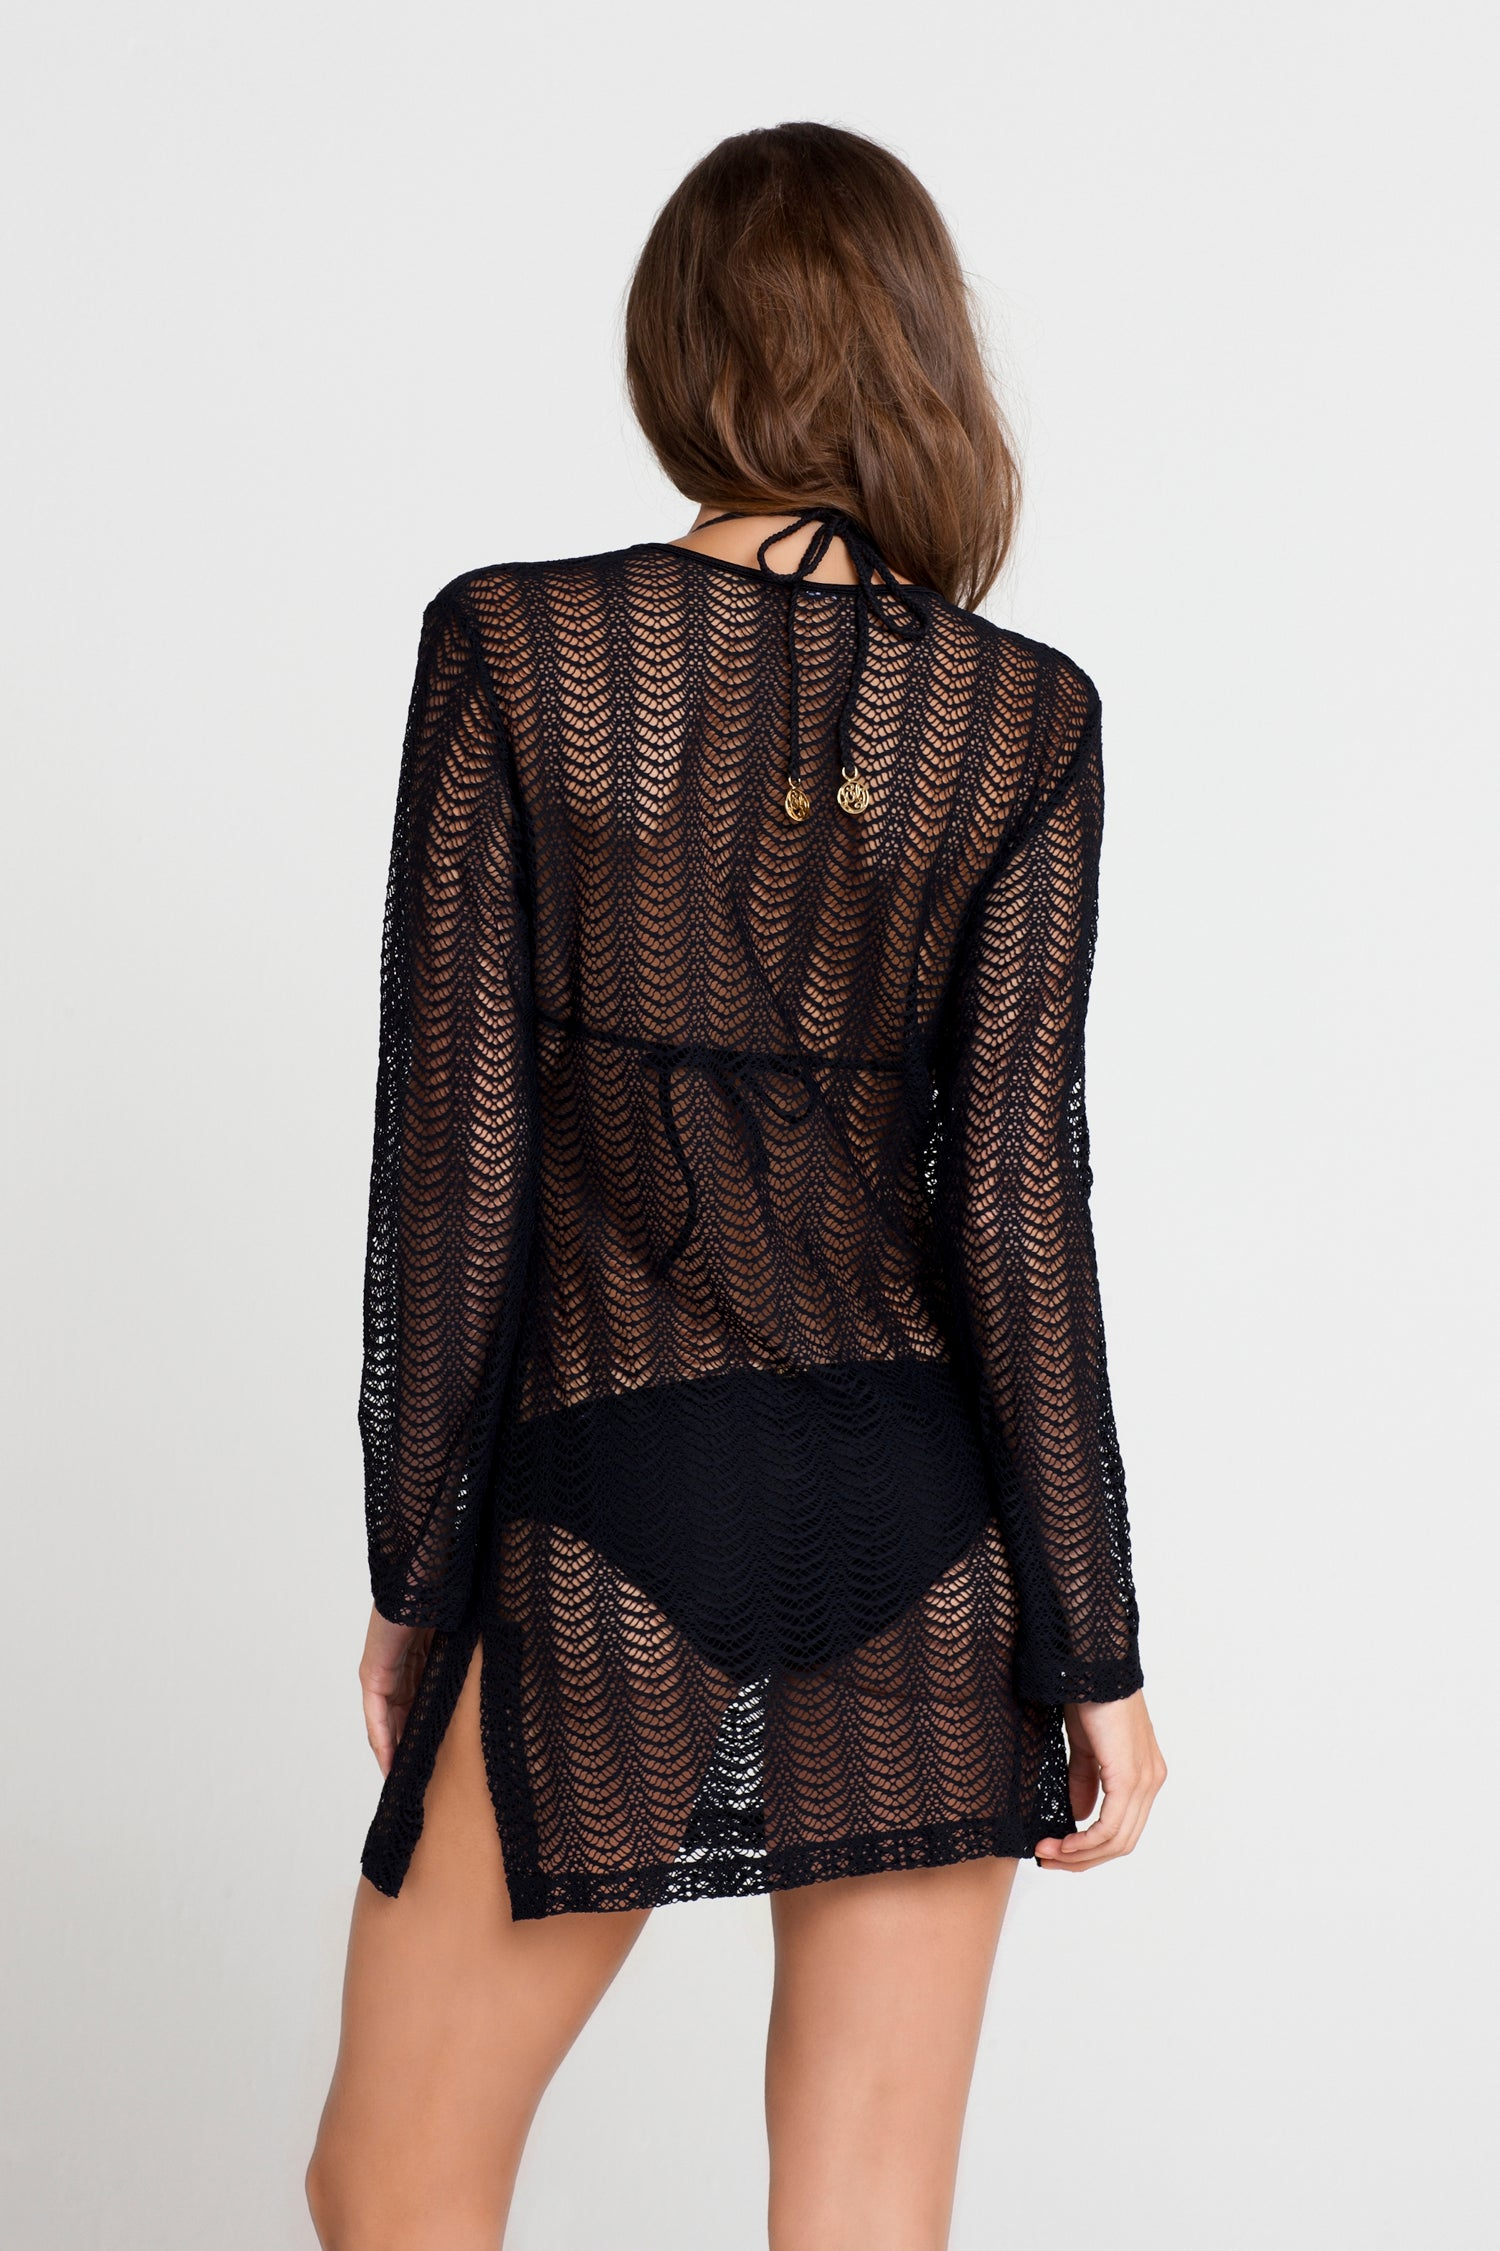 PASION Y ARENA - Plunge Dress • Black